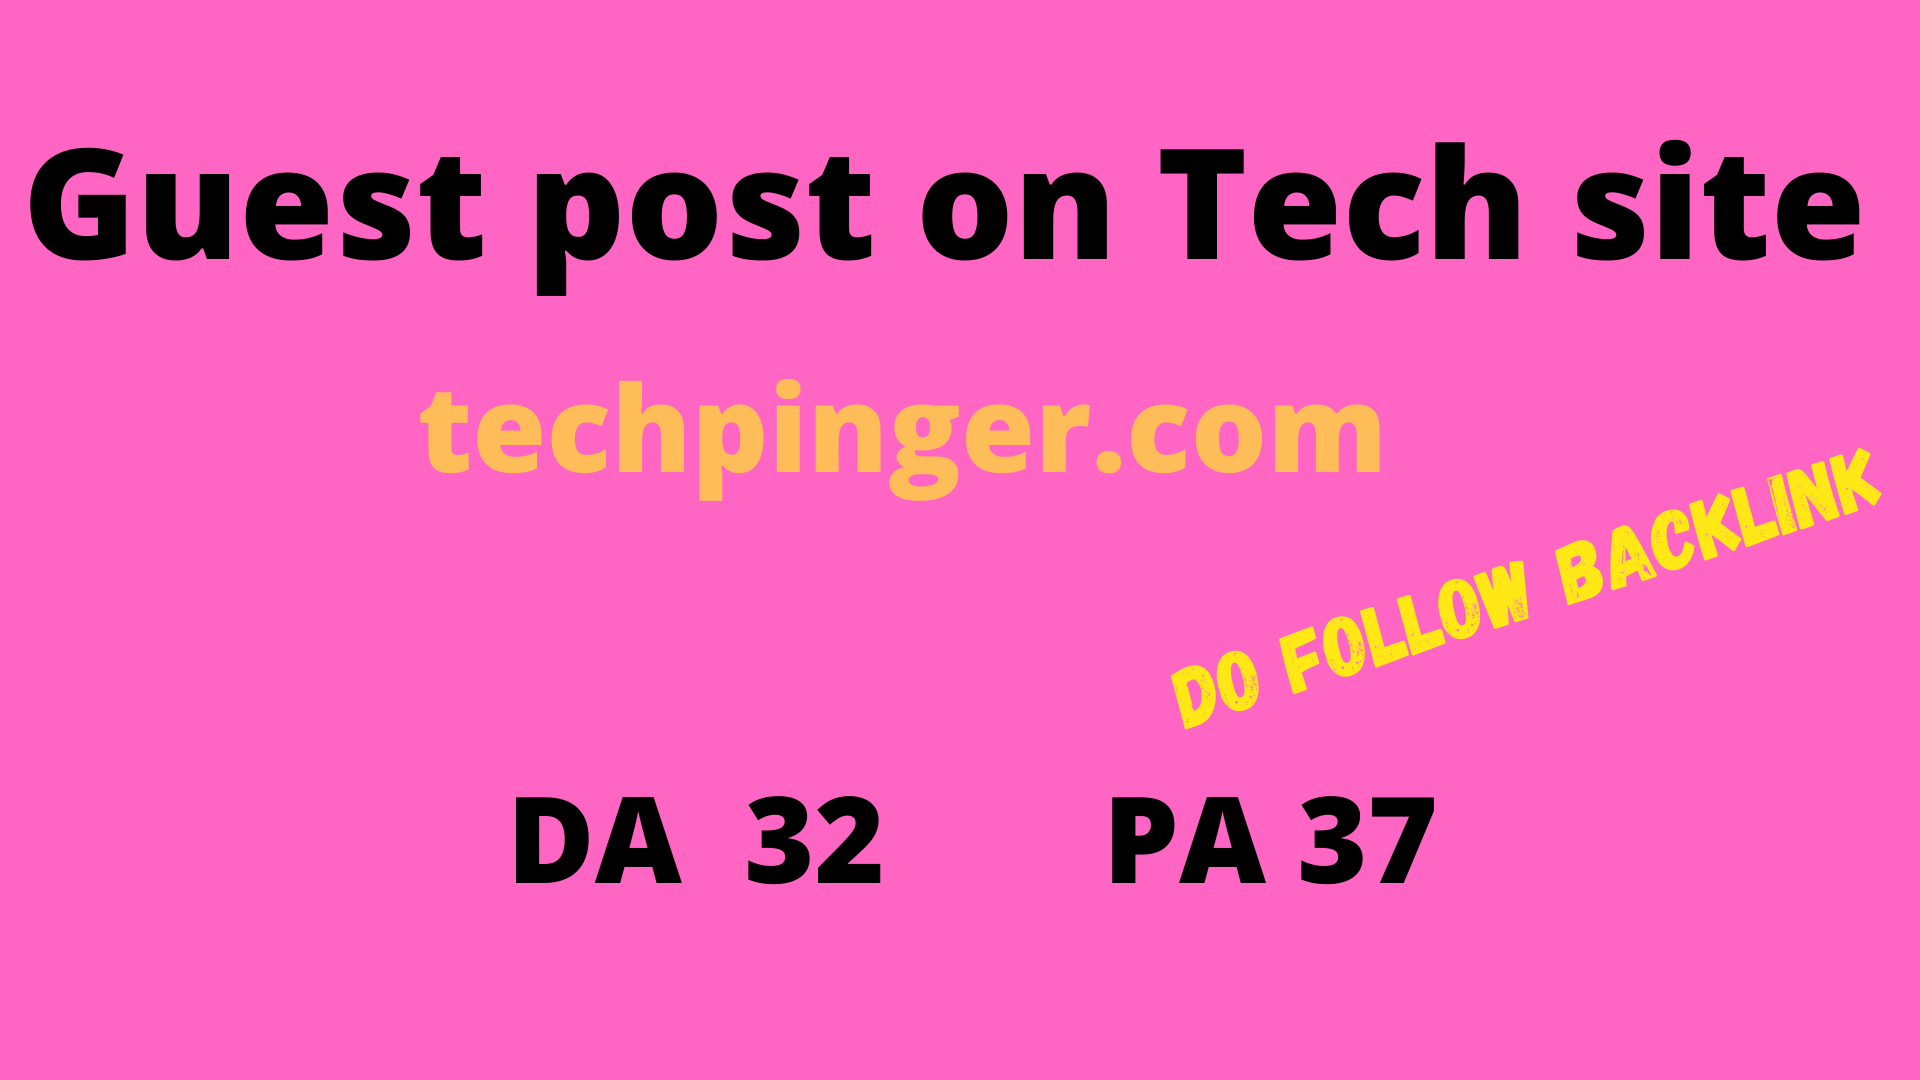 I will Publish a Guest Post On techpinger. com DA 32 and PA 37